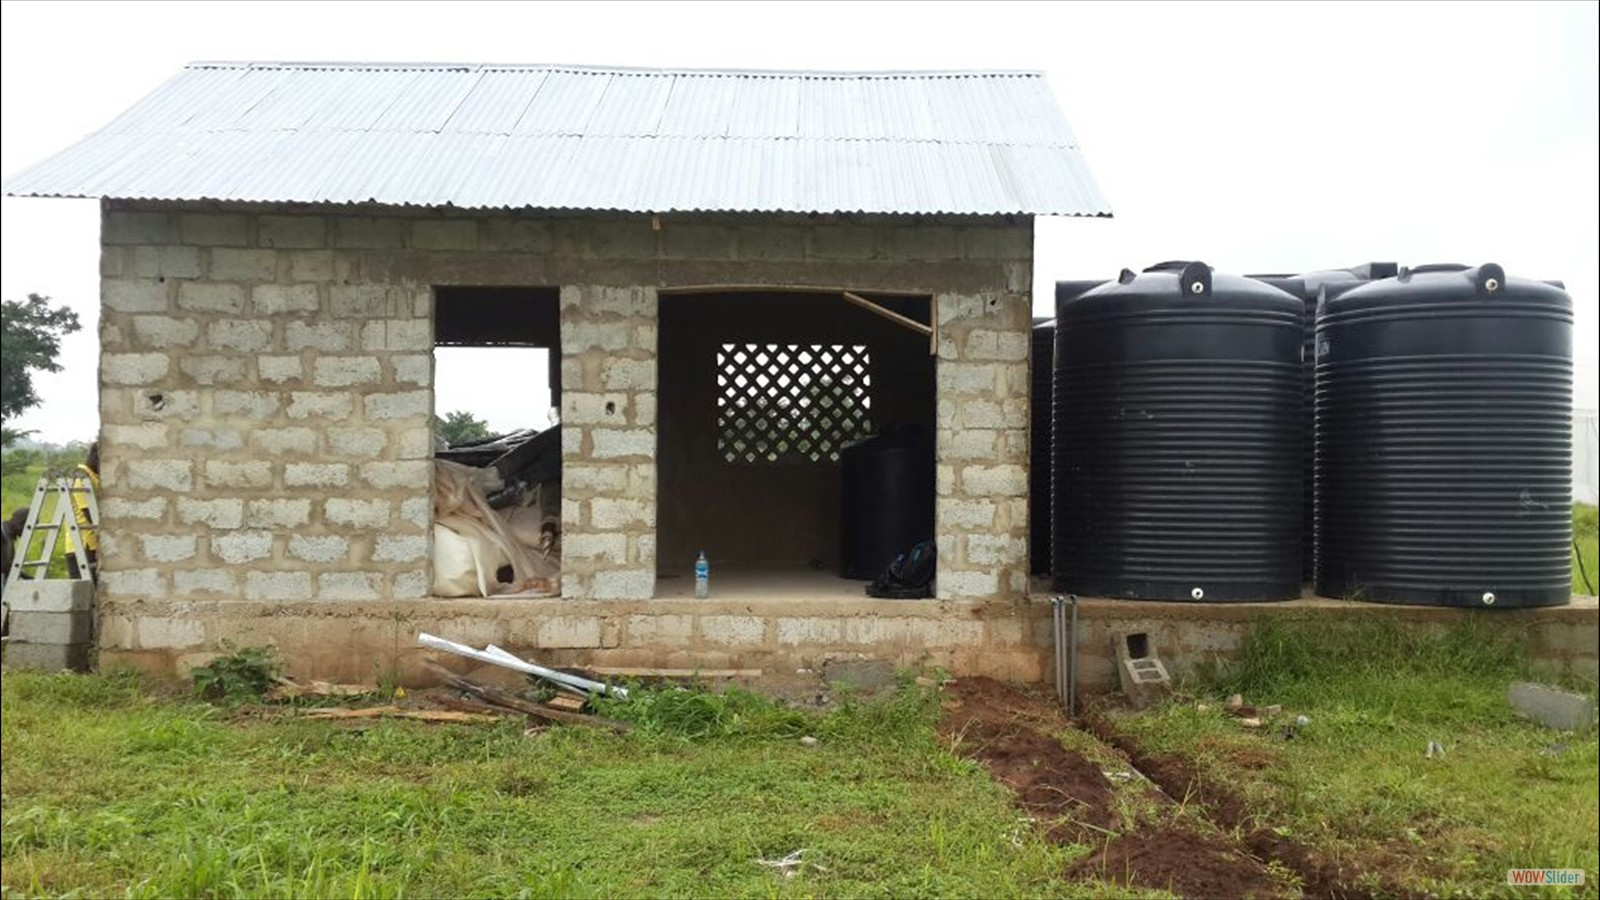 Pump room has been built, water tanks outside - summer 2016